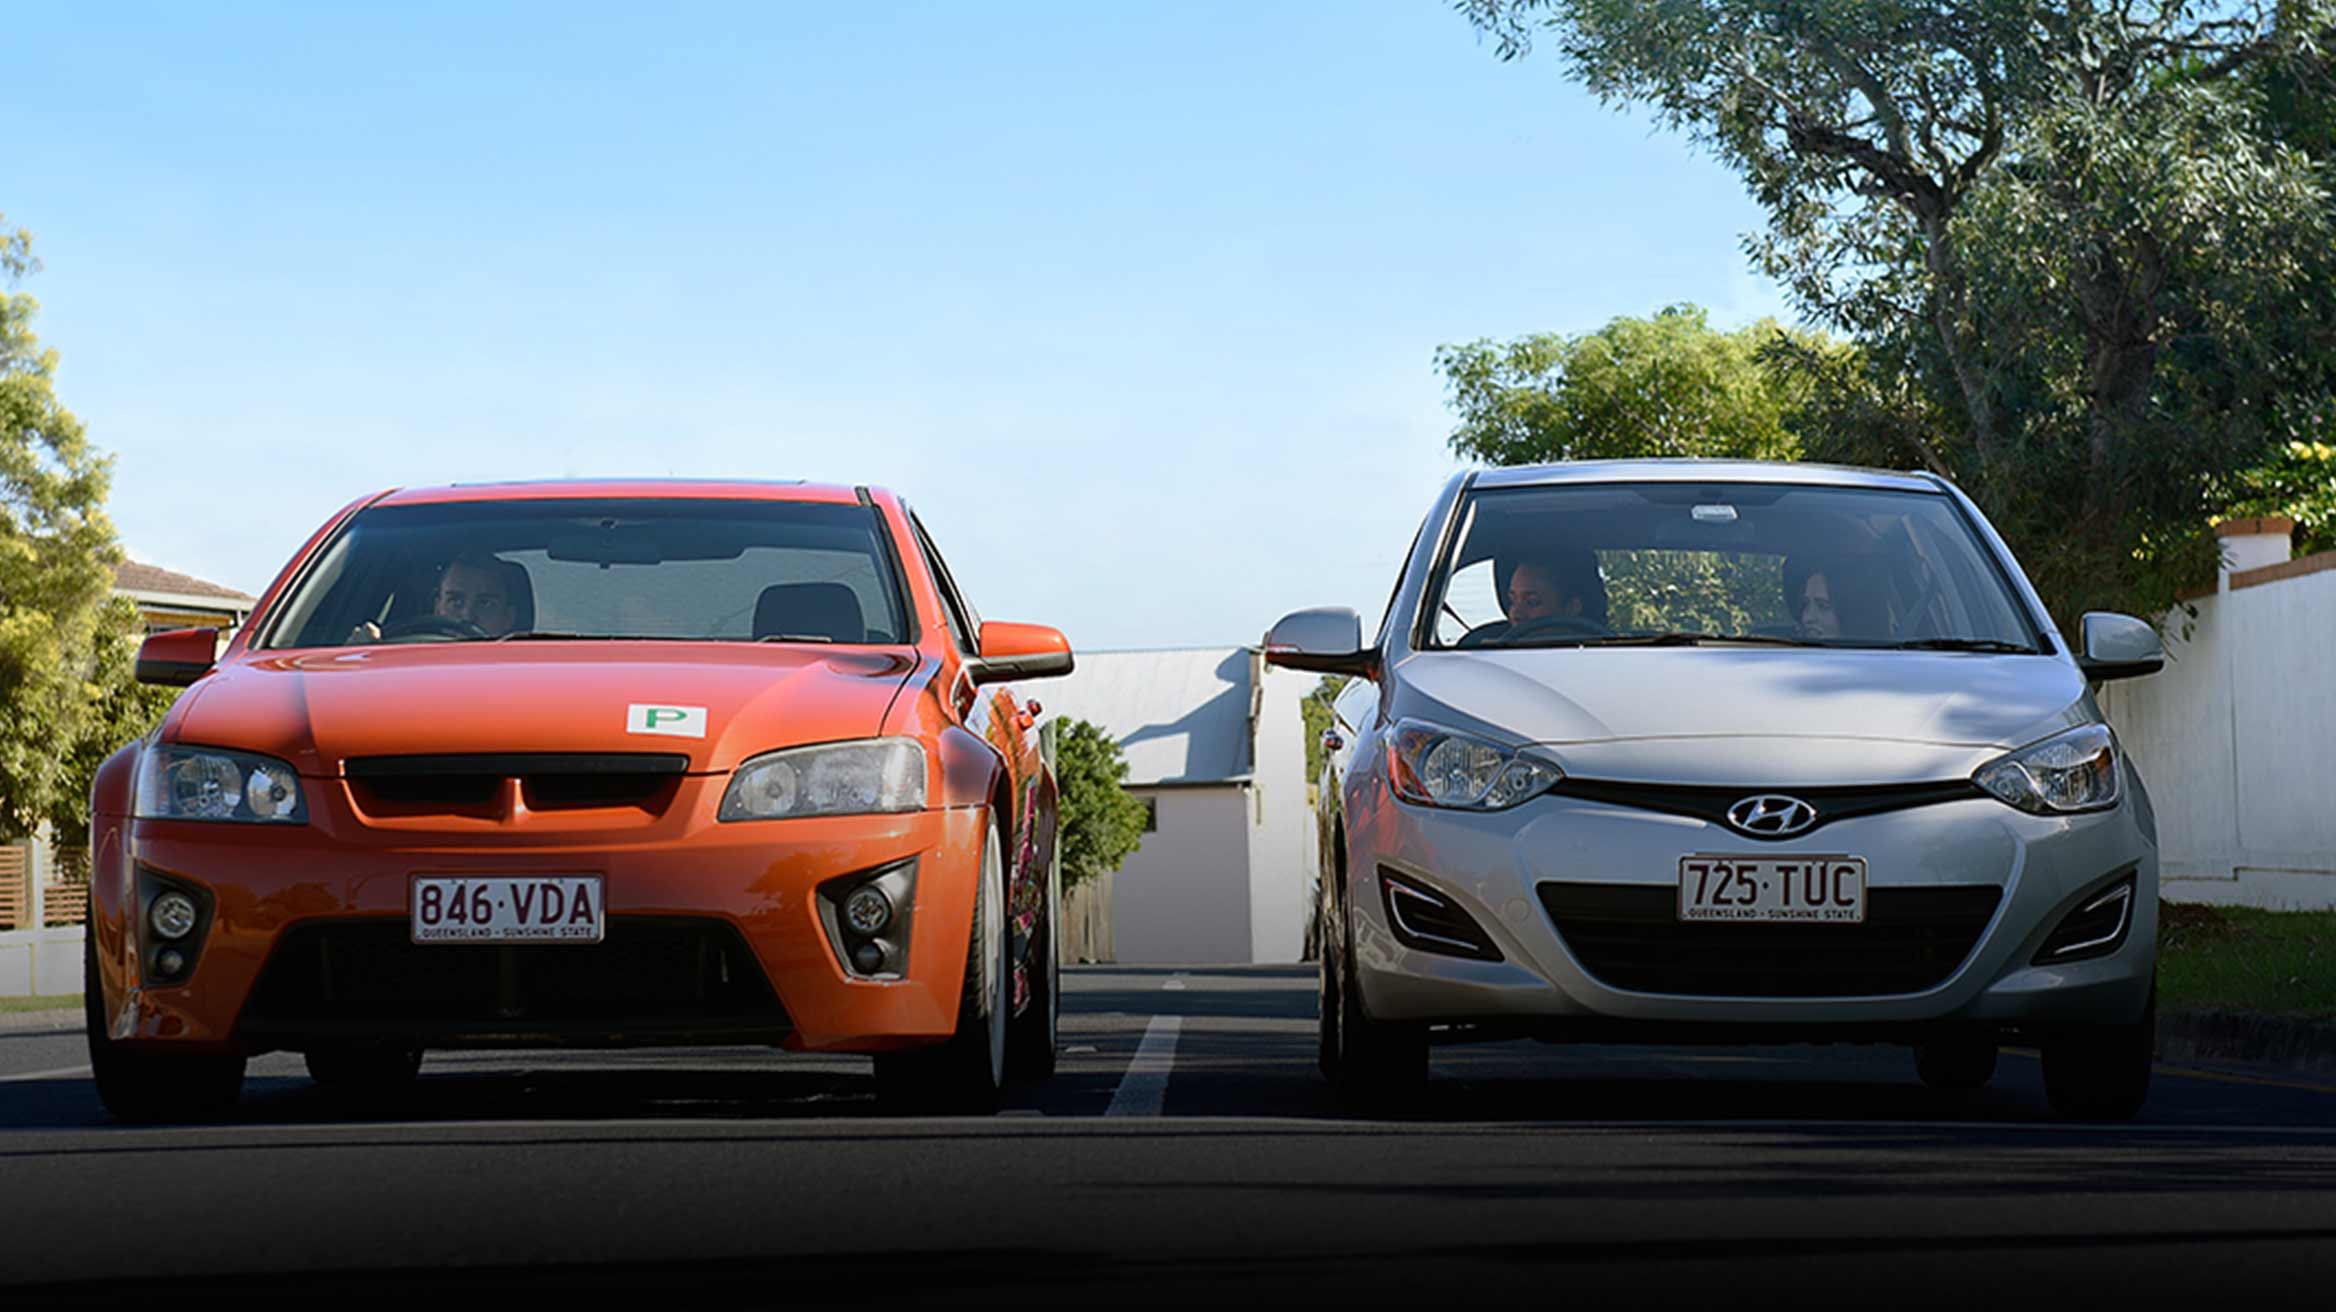 An orange car with P plates visible,  sitting next to a silver car with it's inhabitants looking at the orange car.